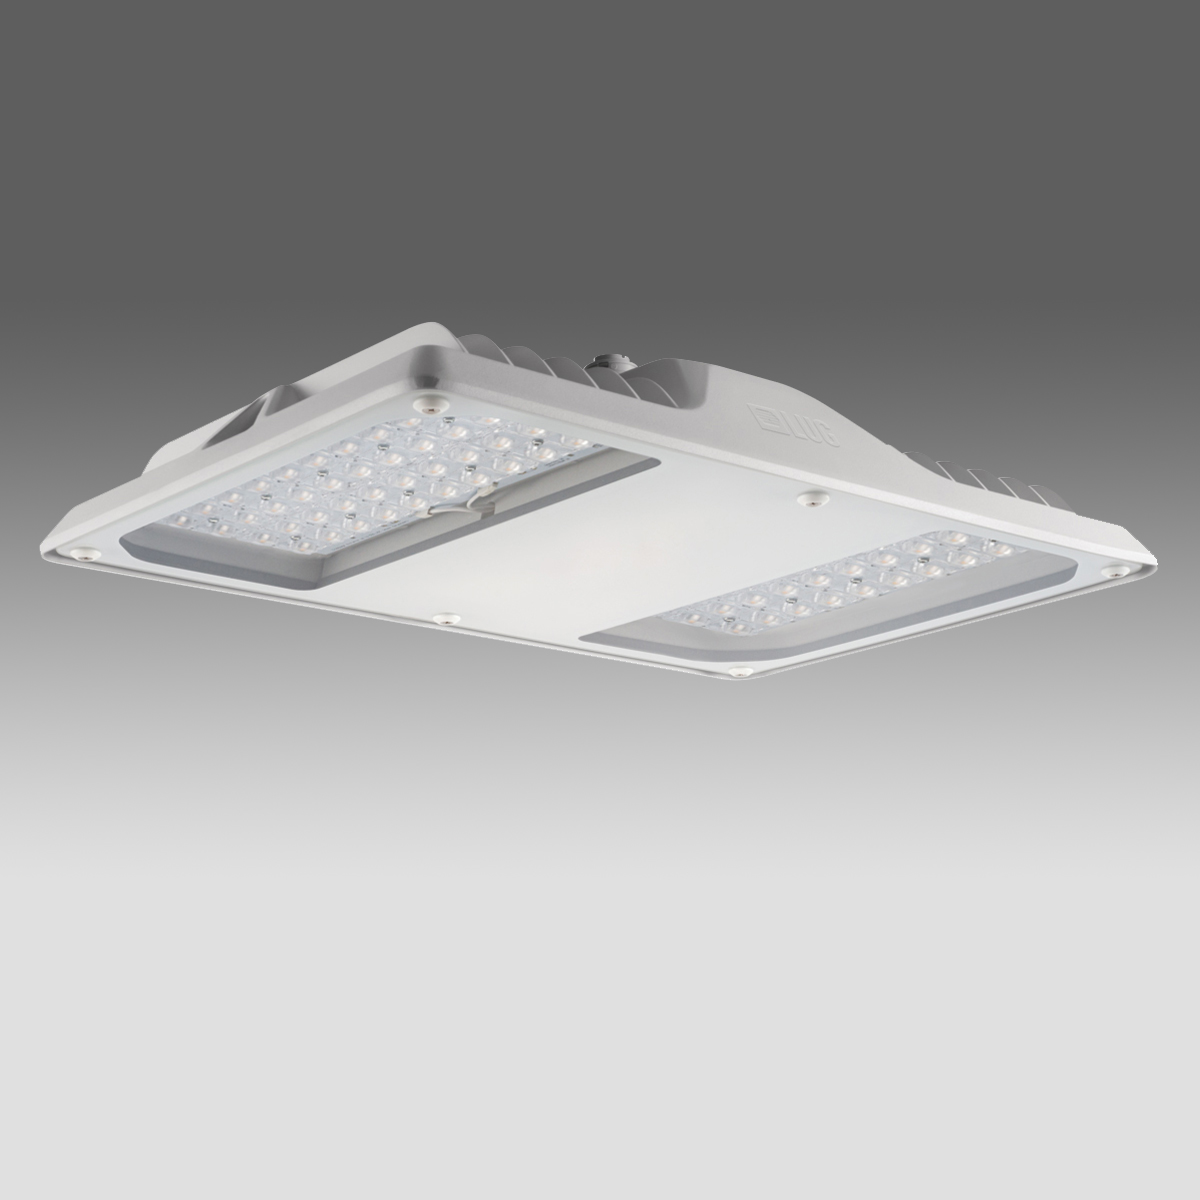 1 Stk Arktur Square PLUS LED 206W 25500lm/757 EVG IP65 55° grau LIG4252011